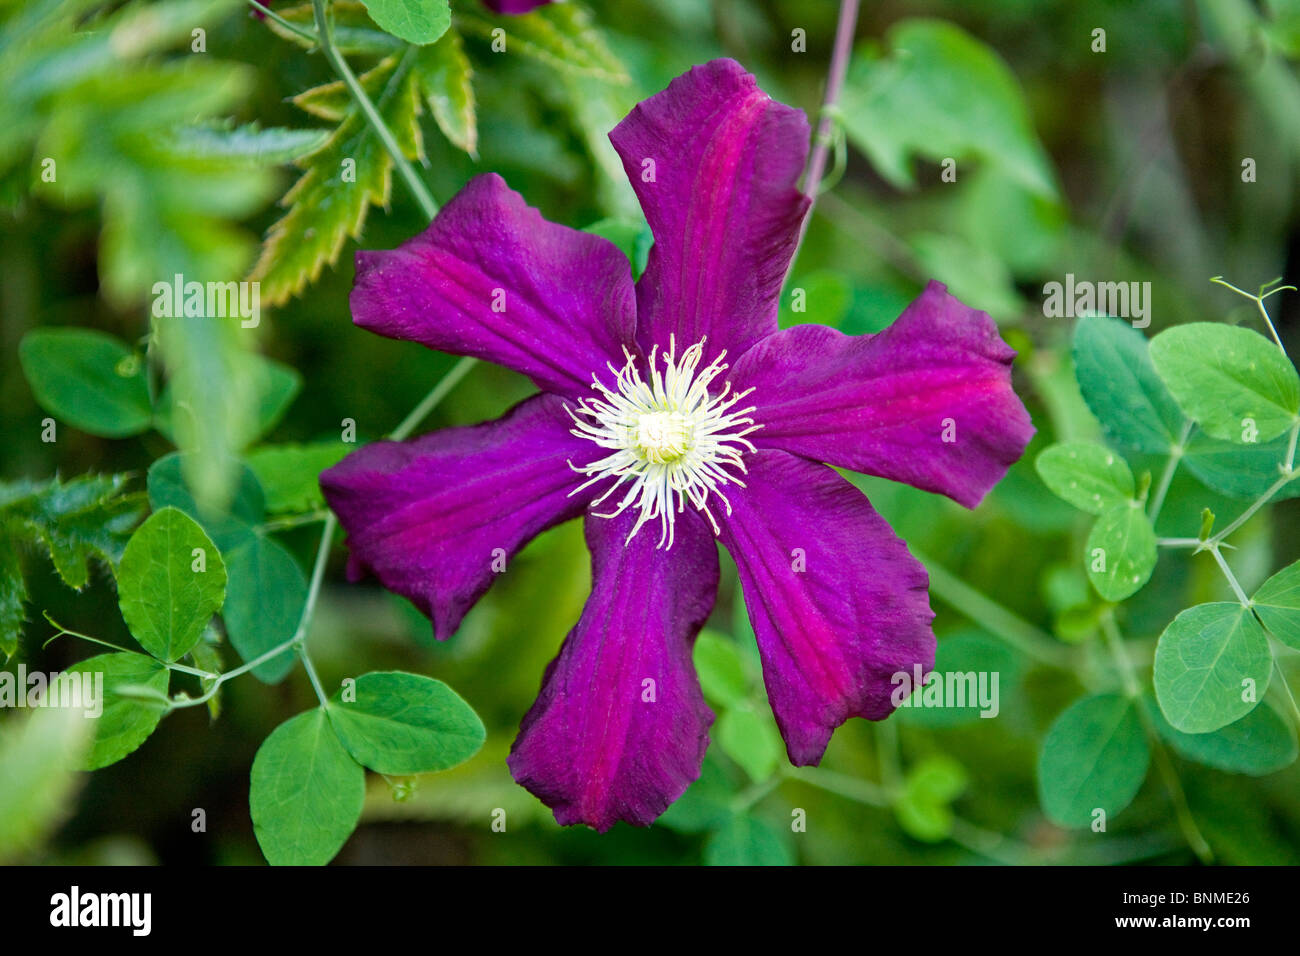 A magenta niobe clematis flower with green leaves - Stock Image